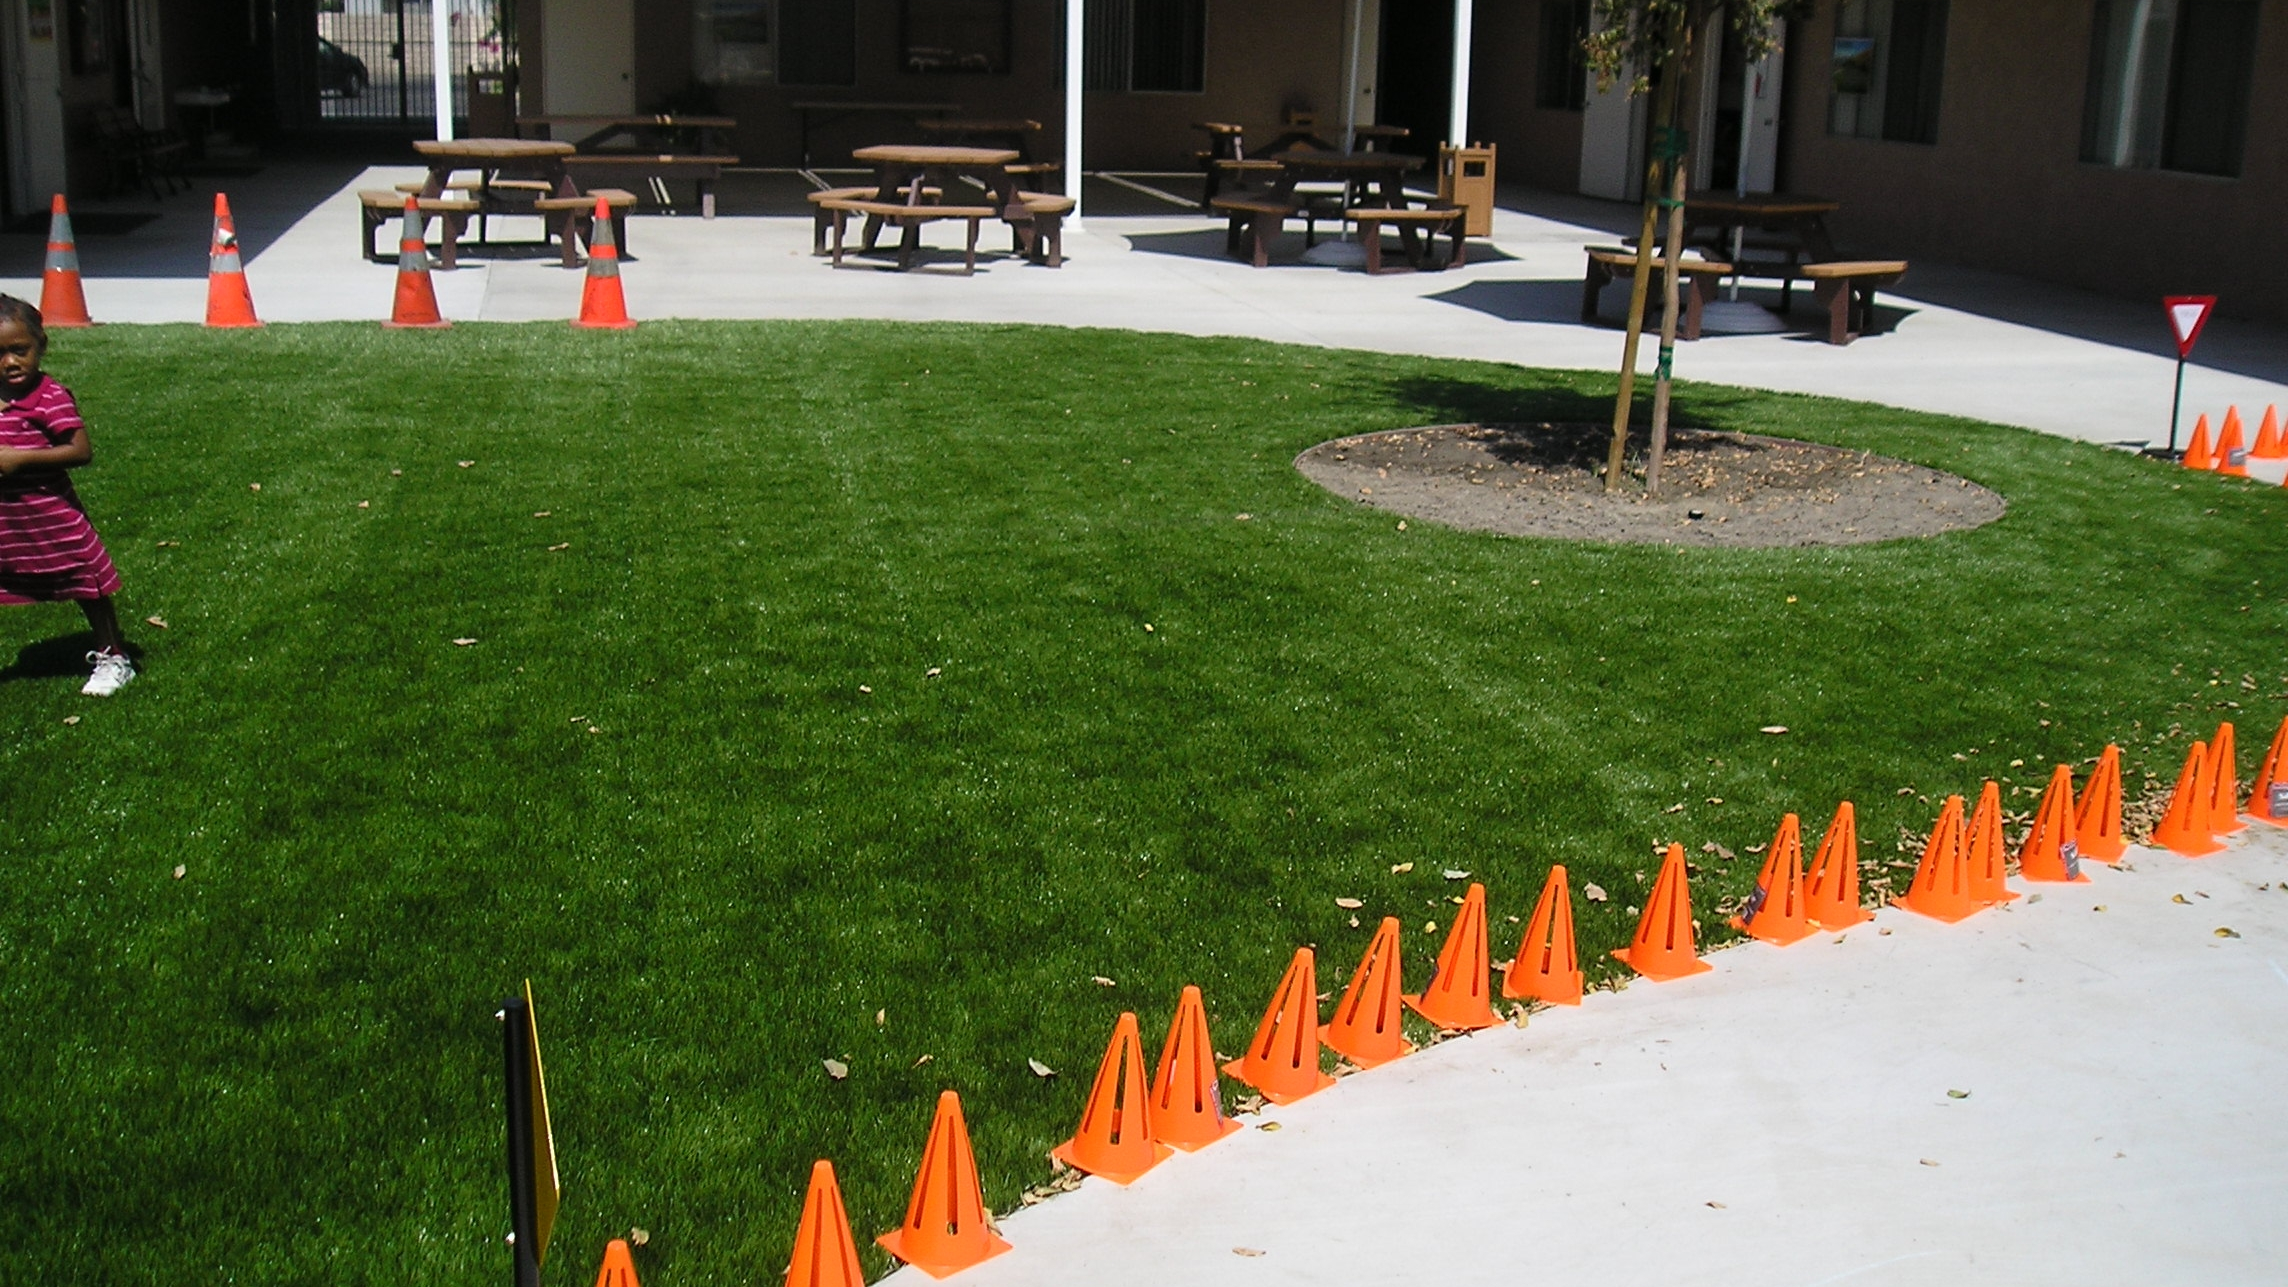 Full Recycle-91 playground turf,outdoor turf,outdoor artificial turf,indoor outdoor turf,artificial turf for playgrounds